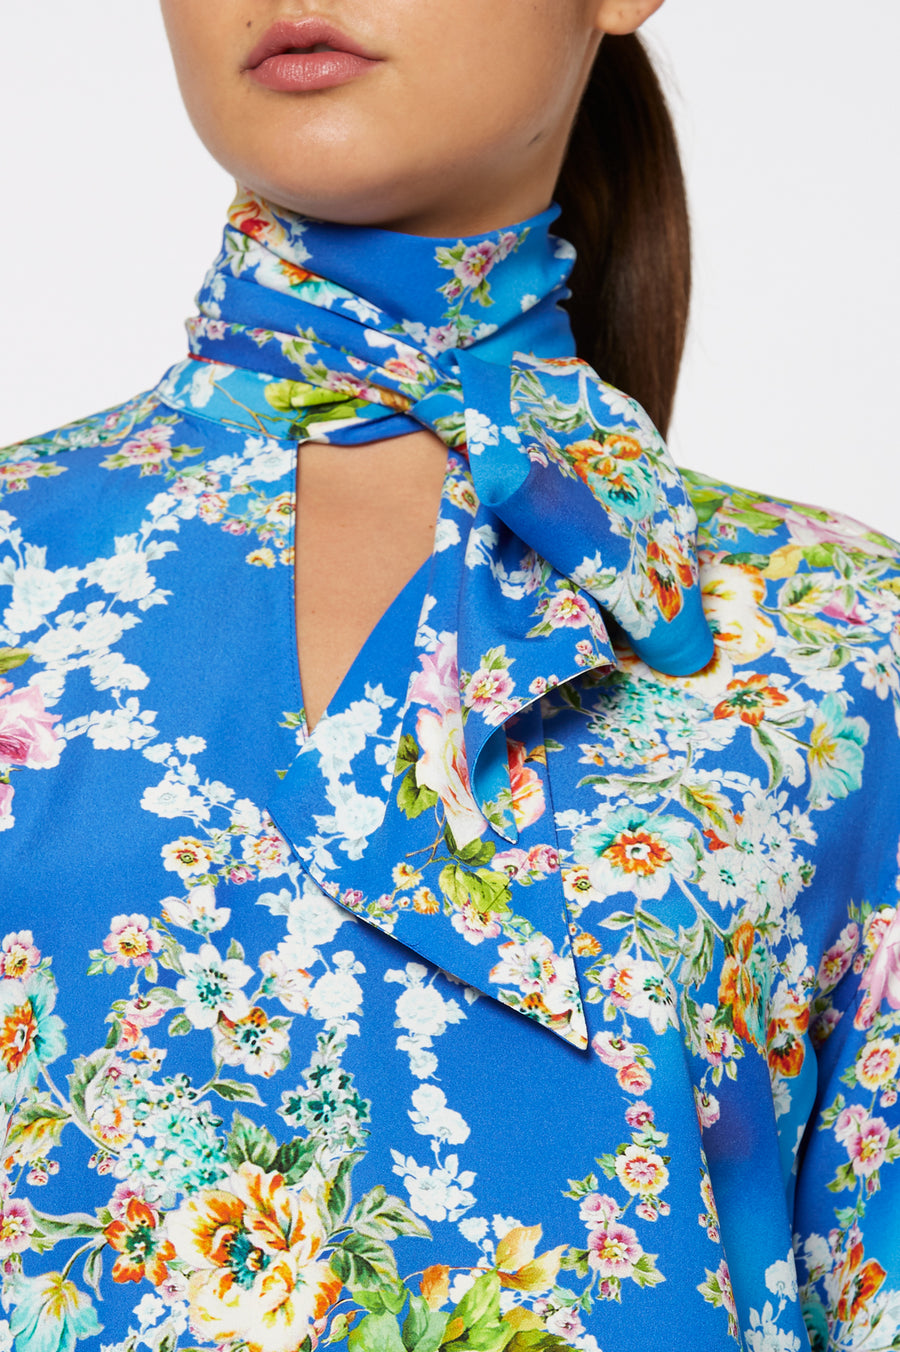 Silk Bouquet Blouse, regular fit, long sleeves, Tie cravat neck a v-neckline, Color Blue floral